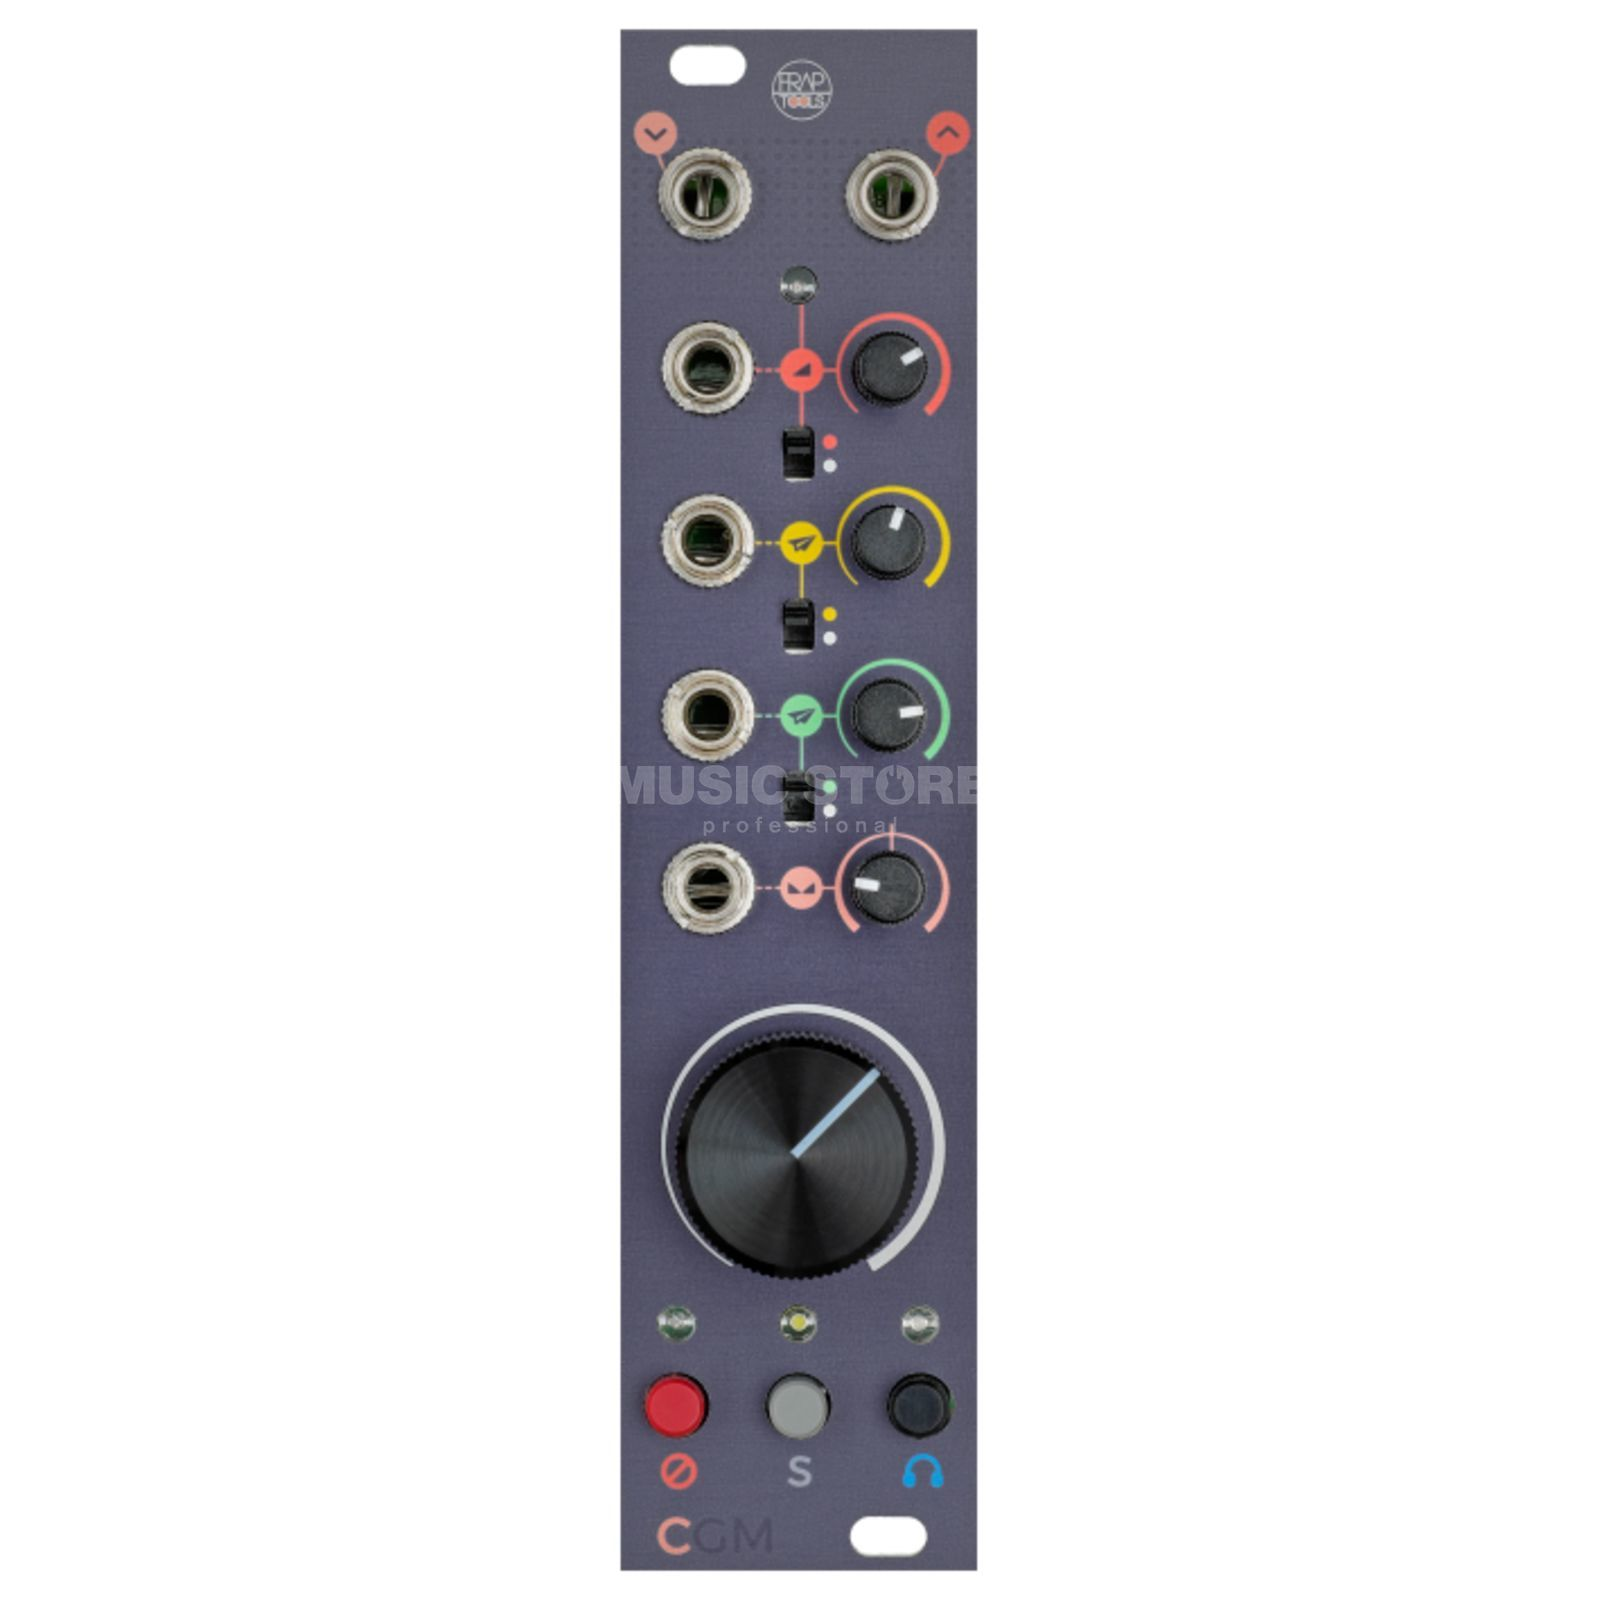 Frap Tools CGM Creative Mixer Channel Product Image